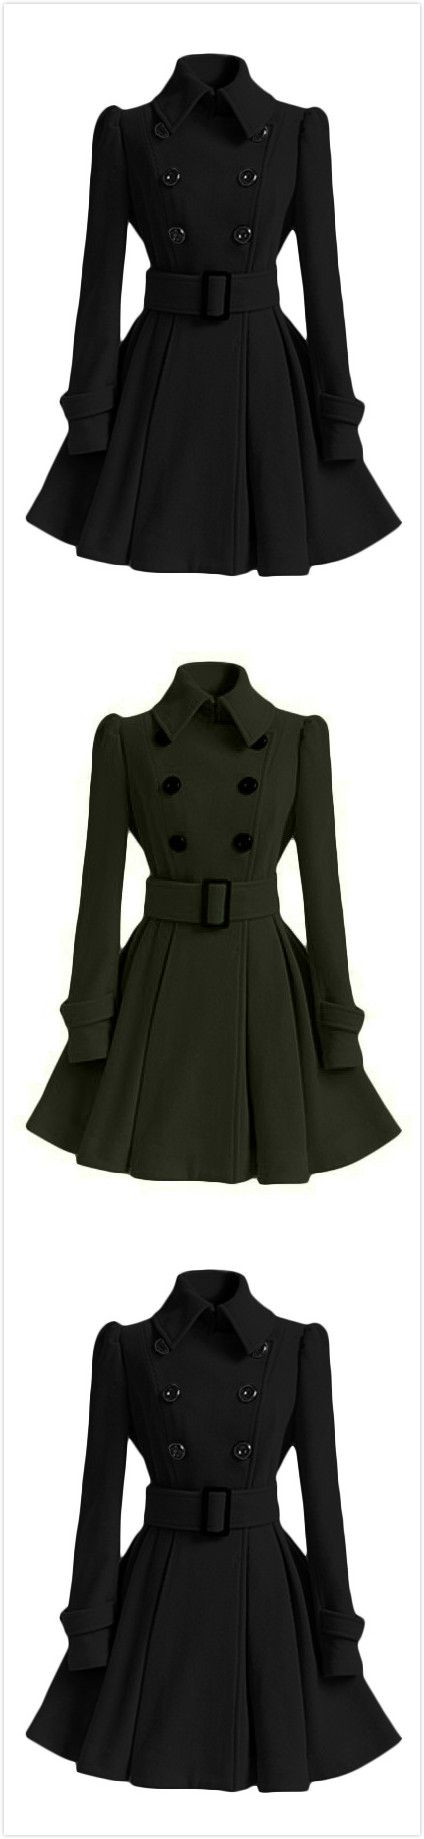 Women's Fashion Double Breasted Woolen Trench Coat with Belt